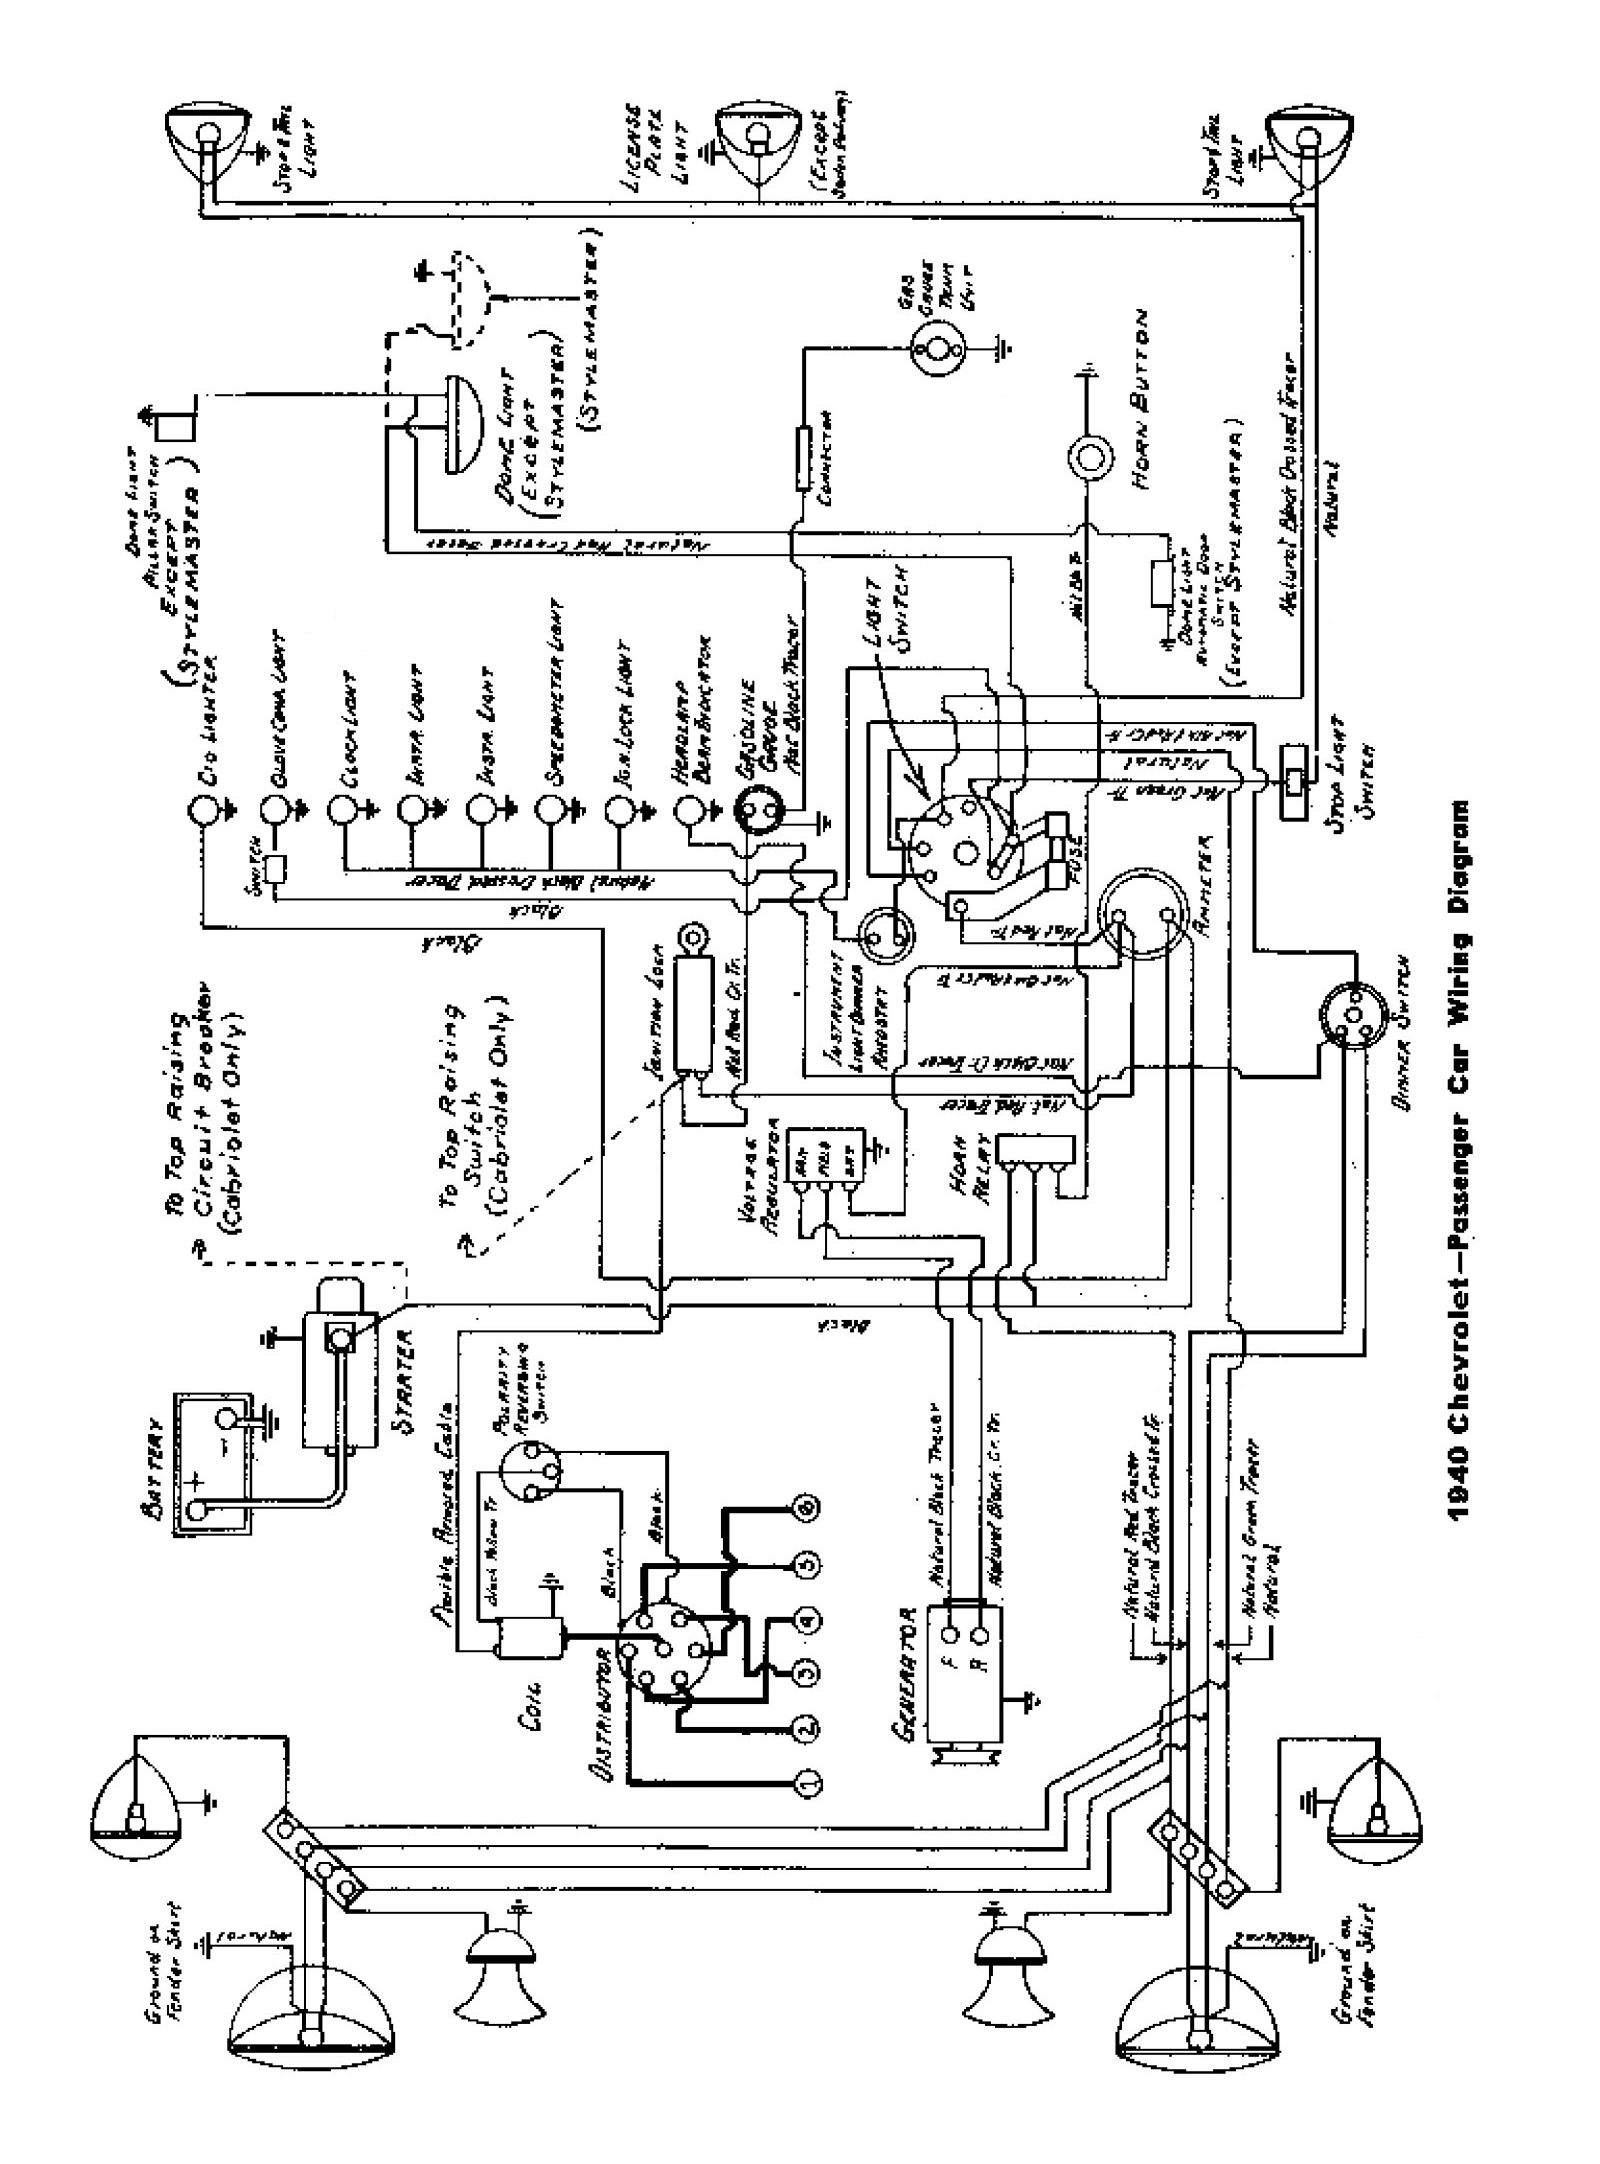 Chevy Wiring Diagrams Ford Electronic Ignition Diagram 2006 1940 Passenger Car